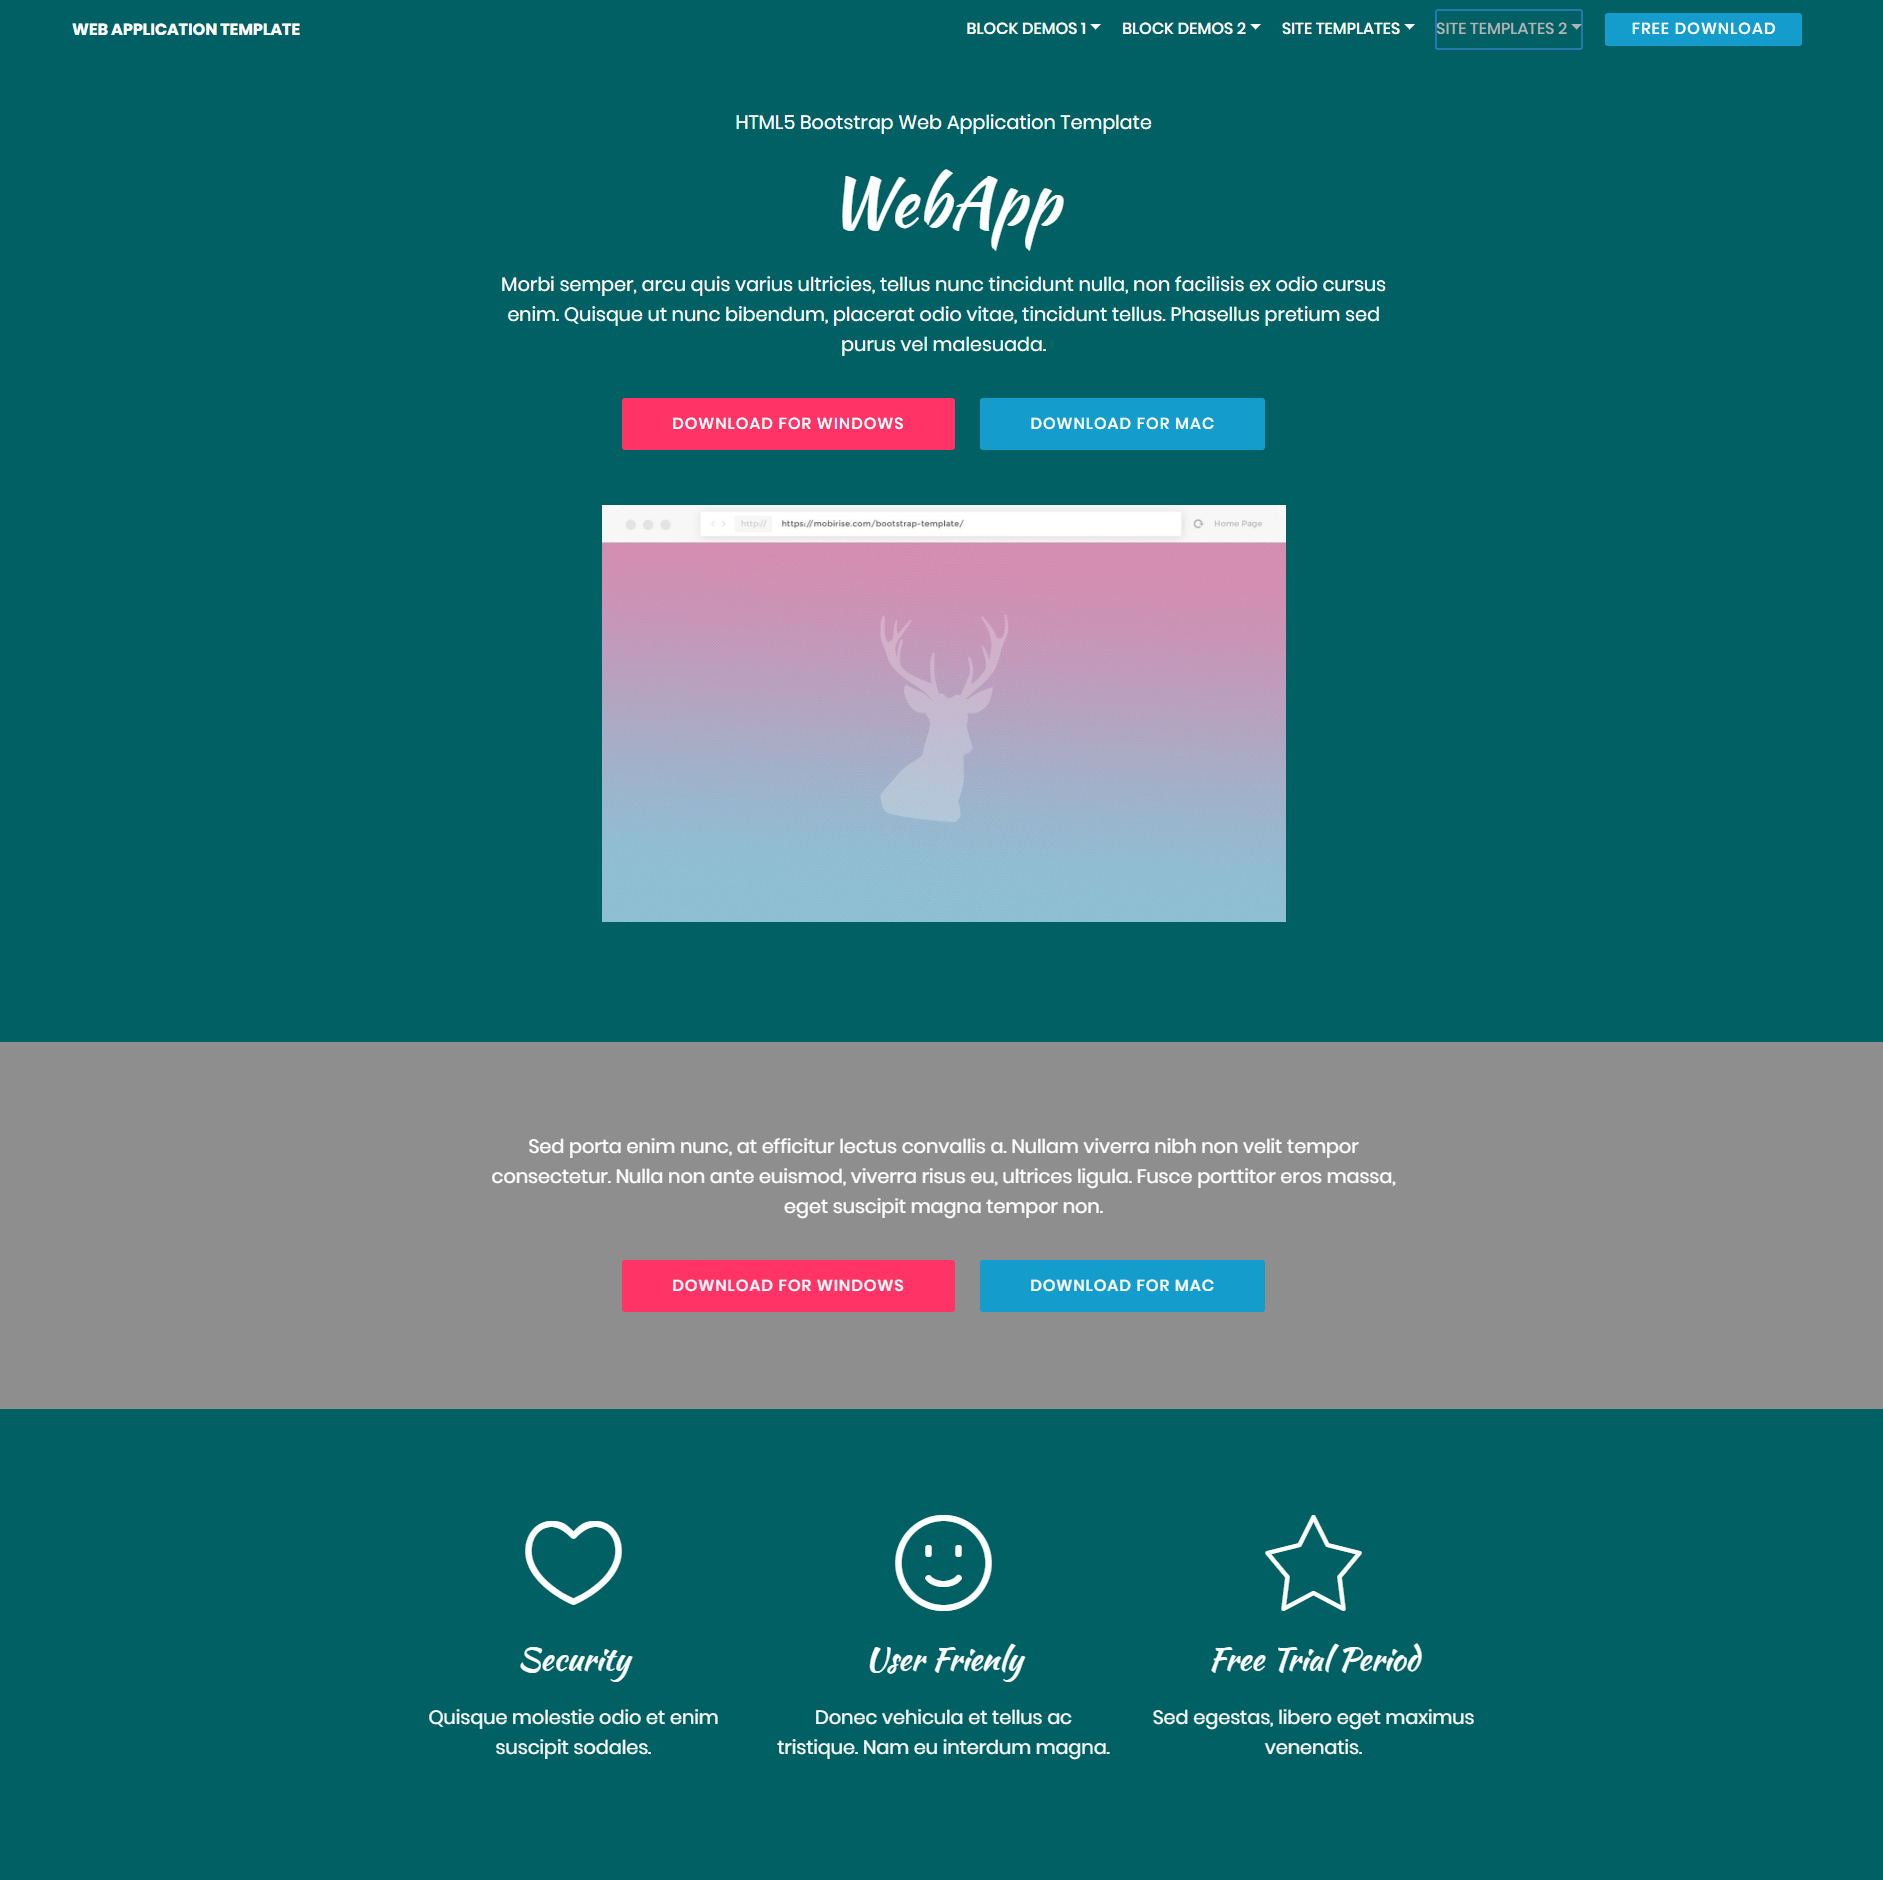 HTML Bootstrap Web Application Themes